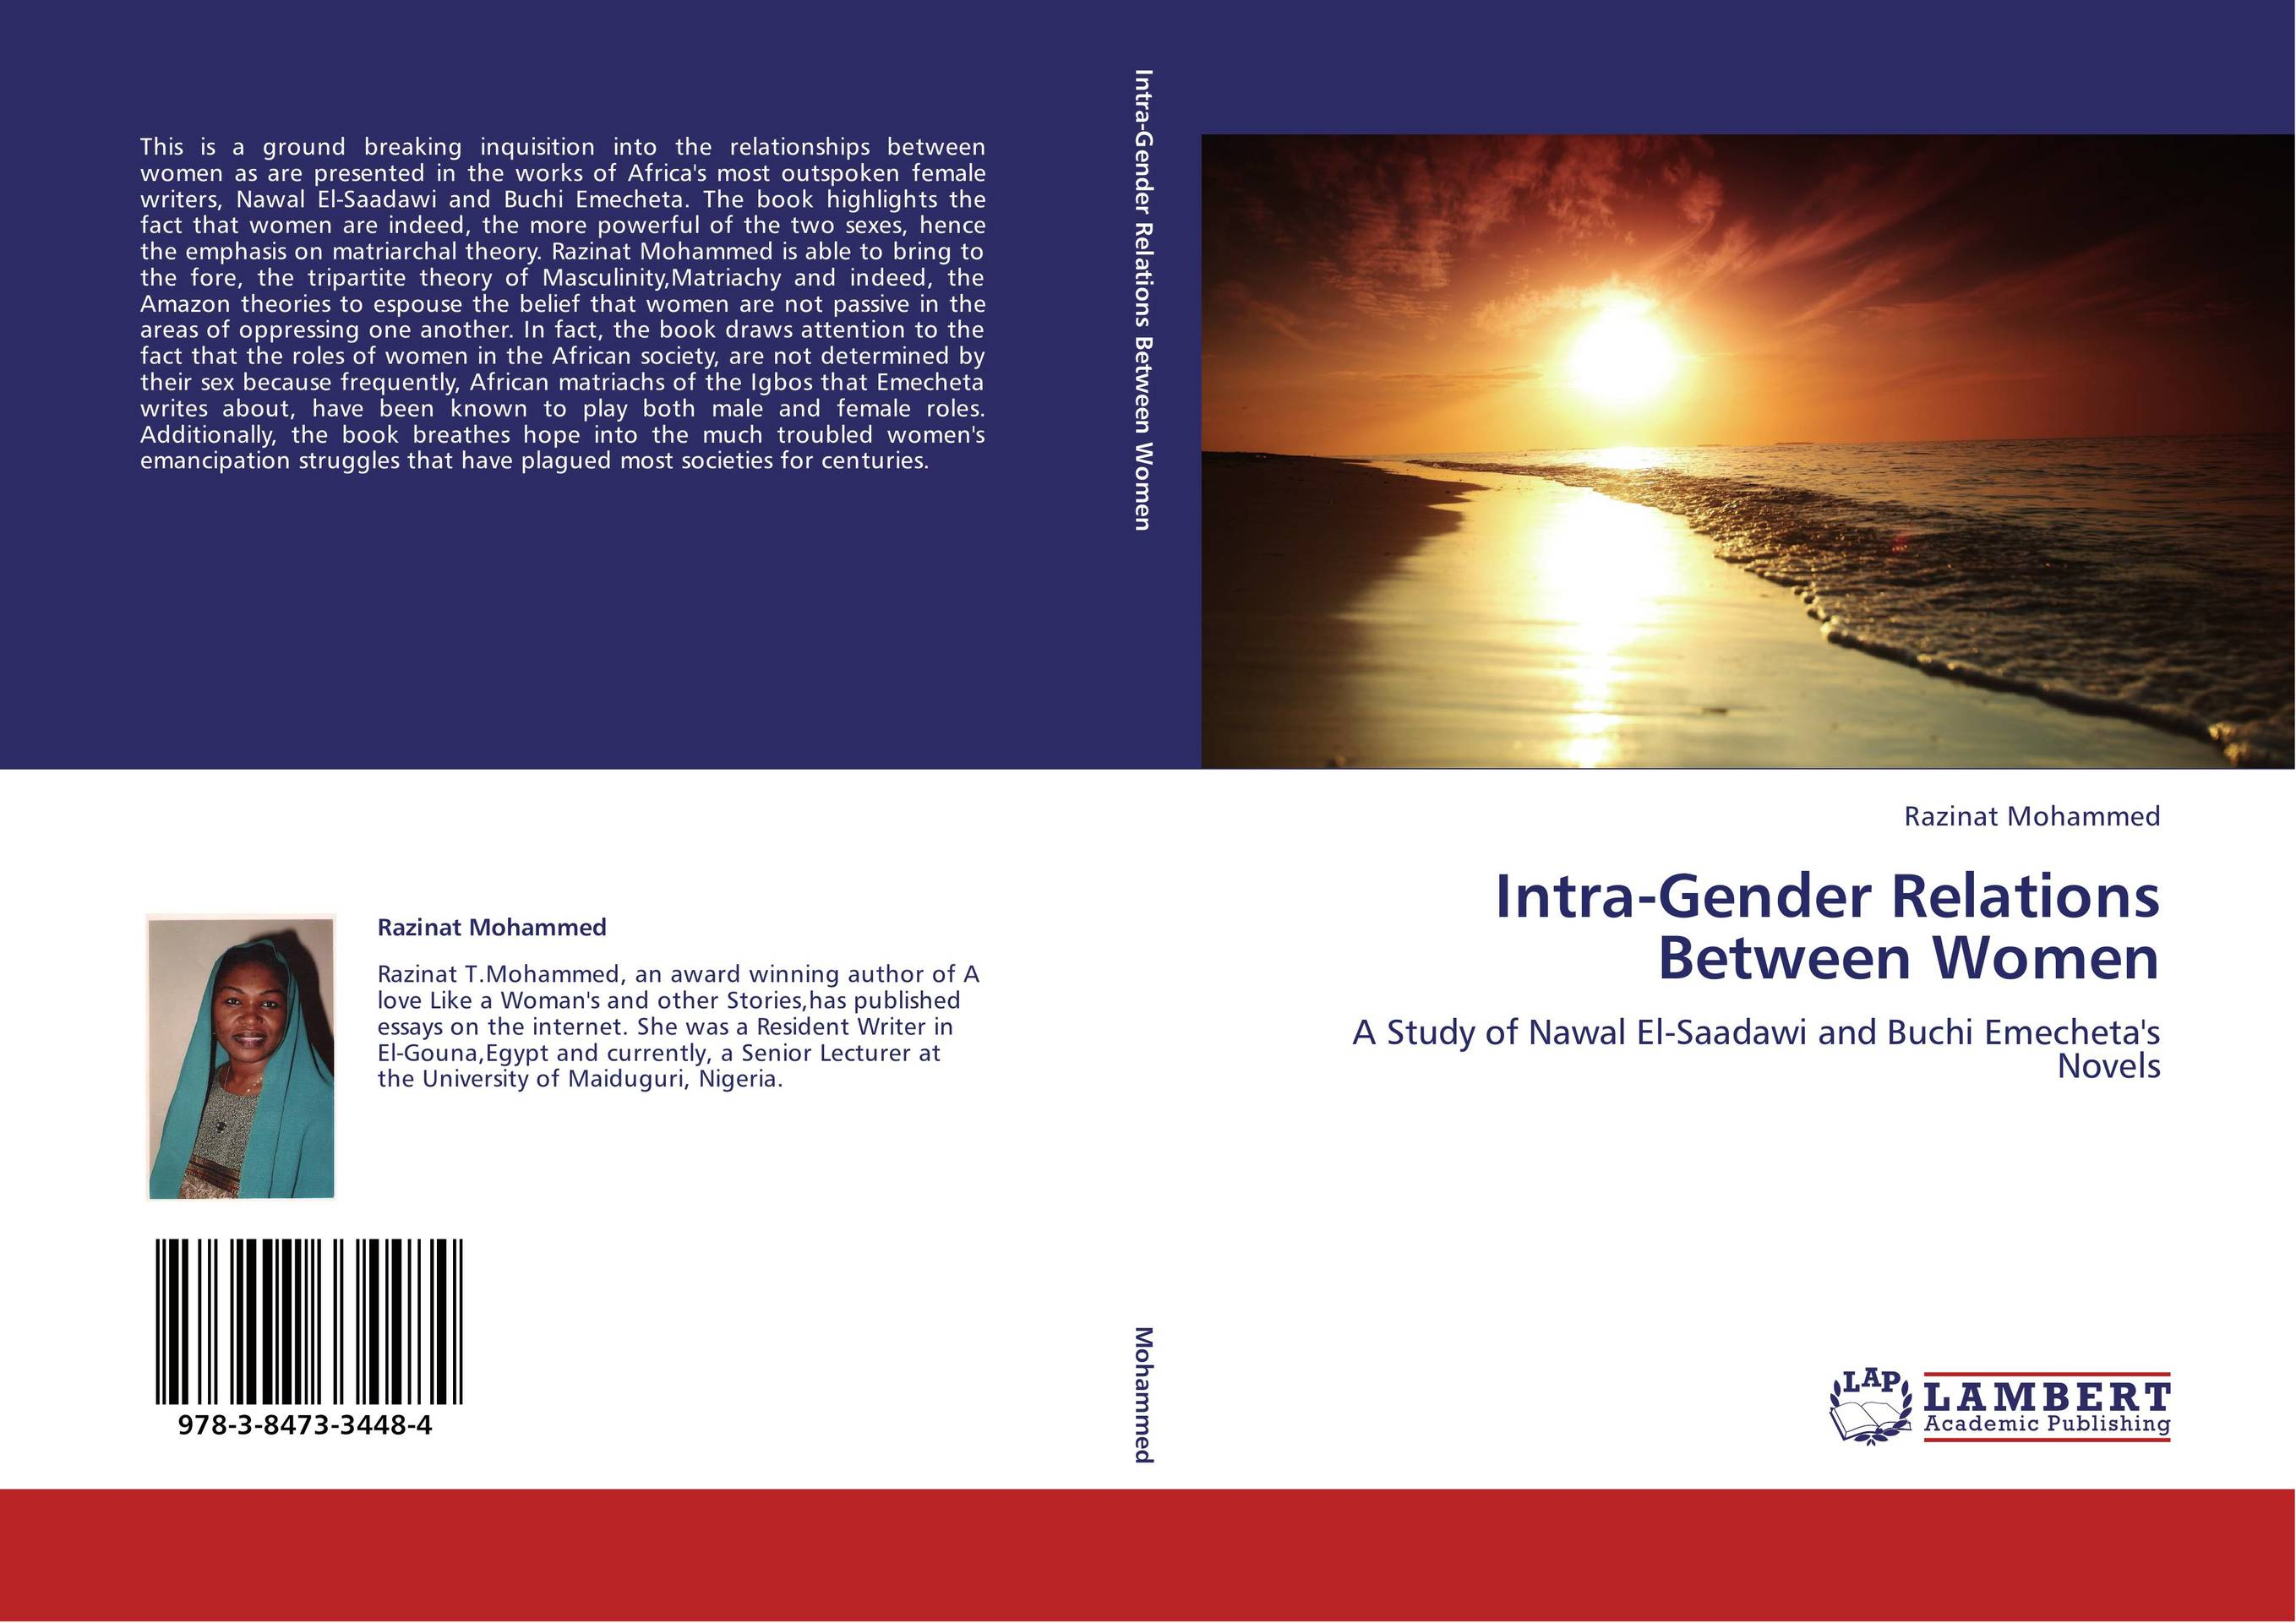 changing nature of gender relations in india essay Women, new technology and development: changing nature of gender relations in rural india [debal ksingha roy] on amazoncom free shipping on qualifying offers this study examines the impact of agricultural modernization and technological changes on the land holding patterns.